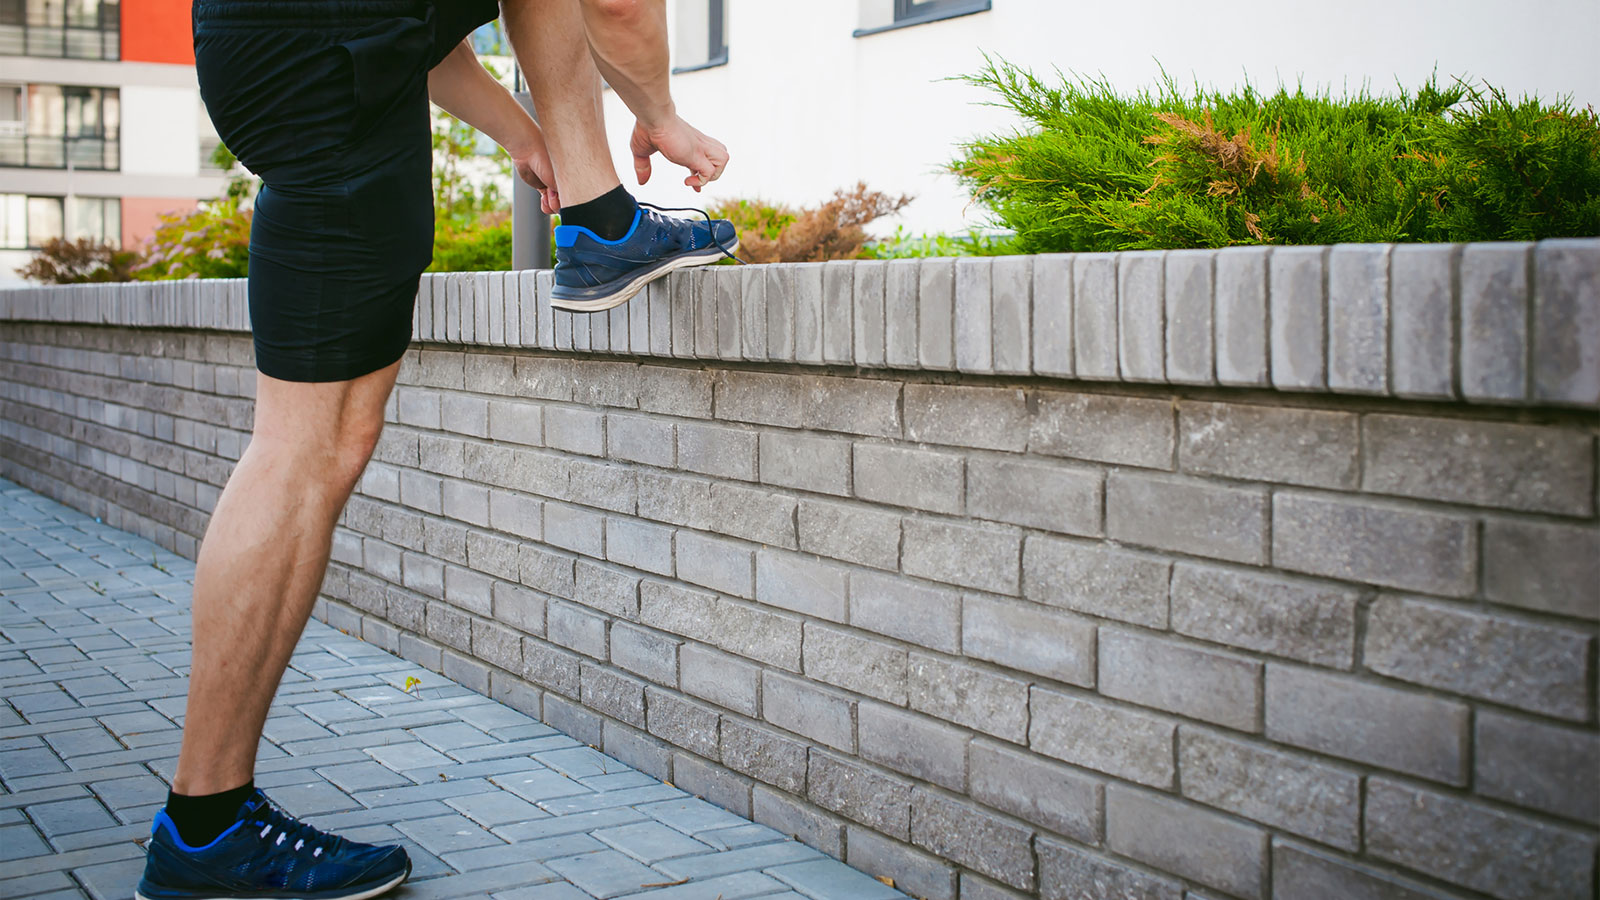 The Best 20 Minute Bodyweight Legs Workout For Busy Guys Circuit Leg